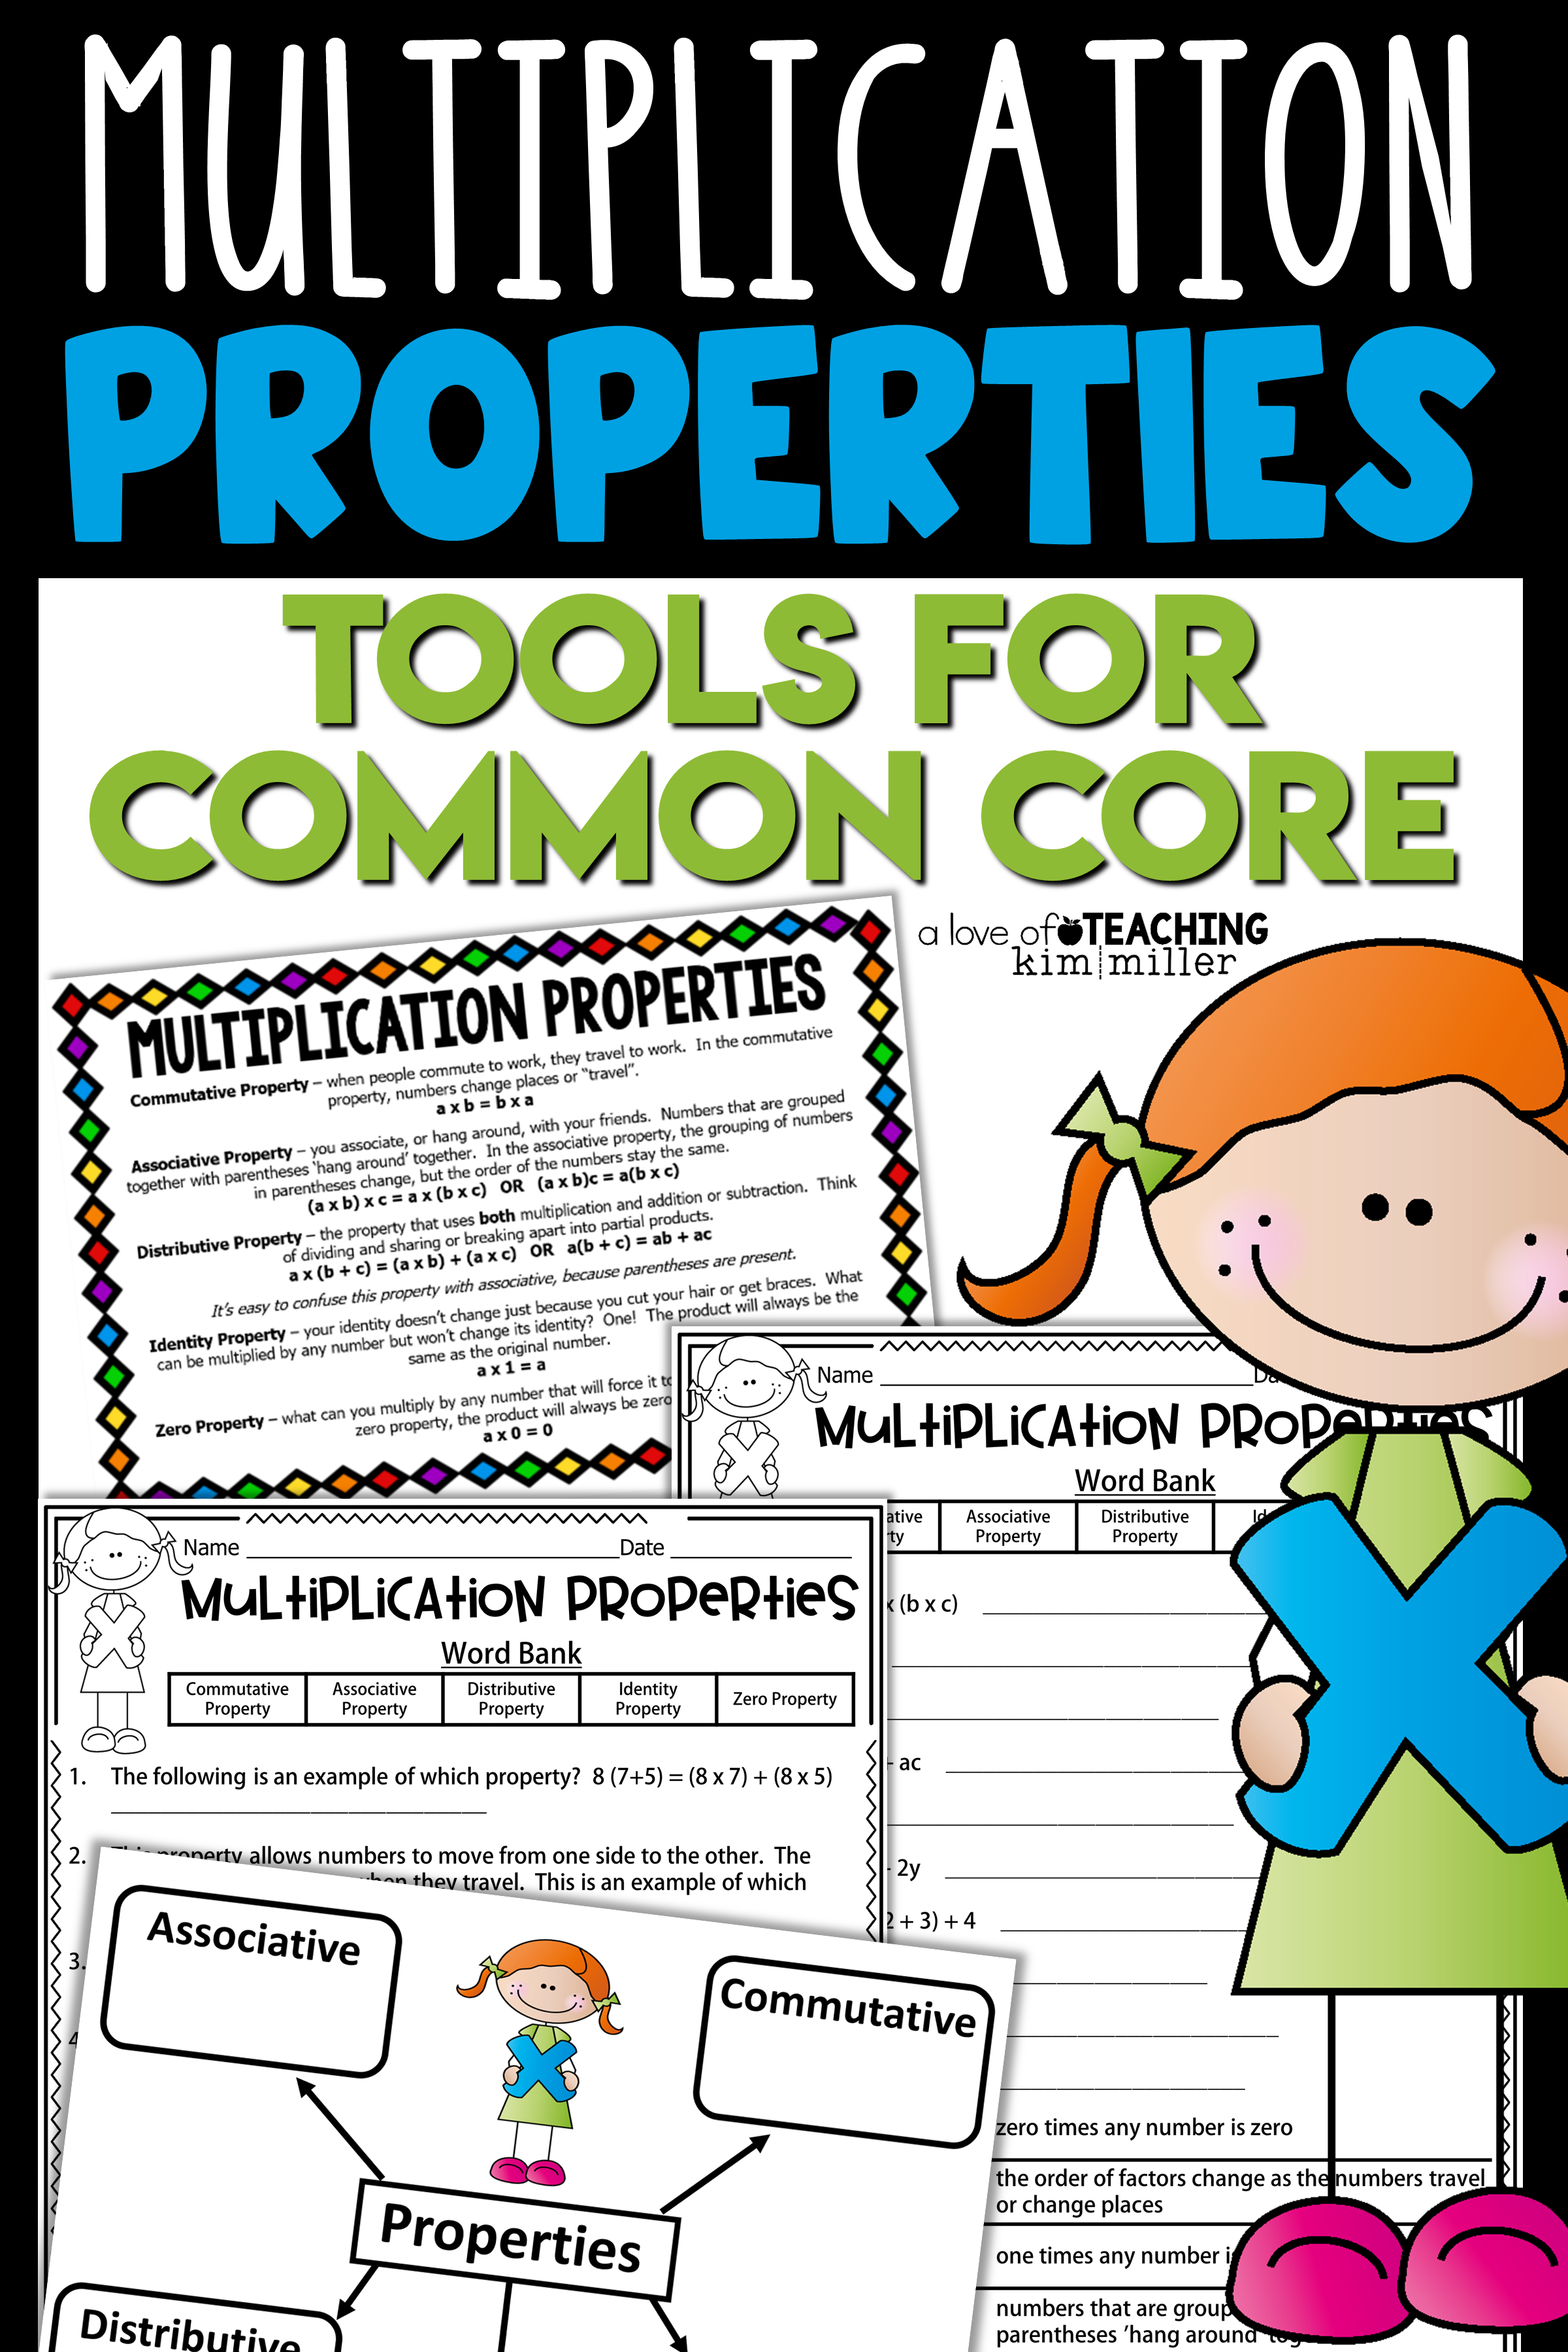 Multiplication Properties Tools For Common Core